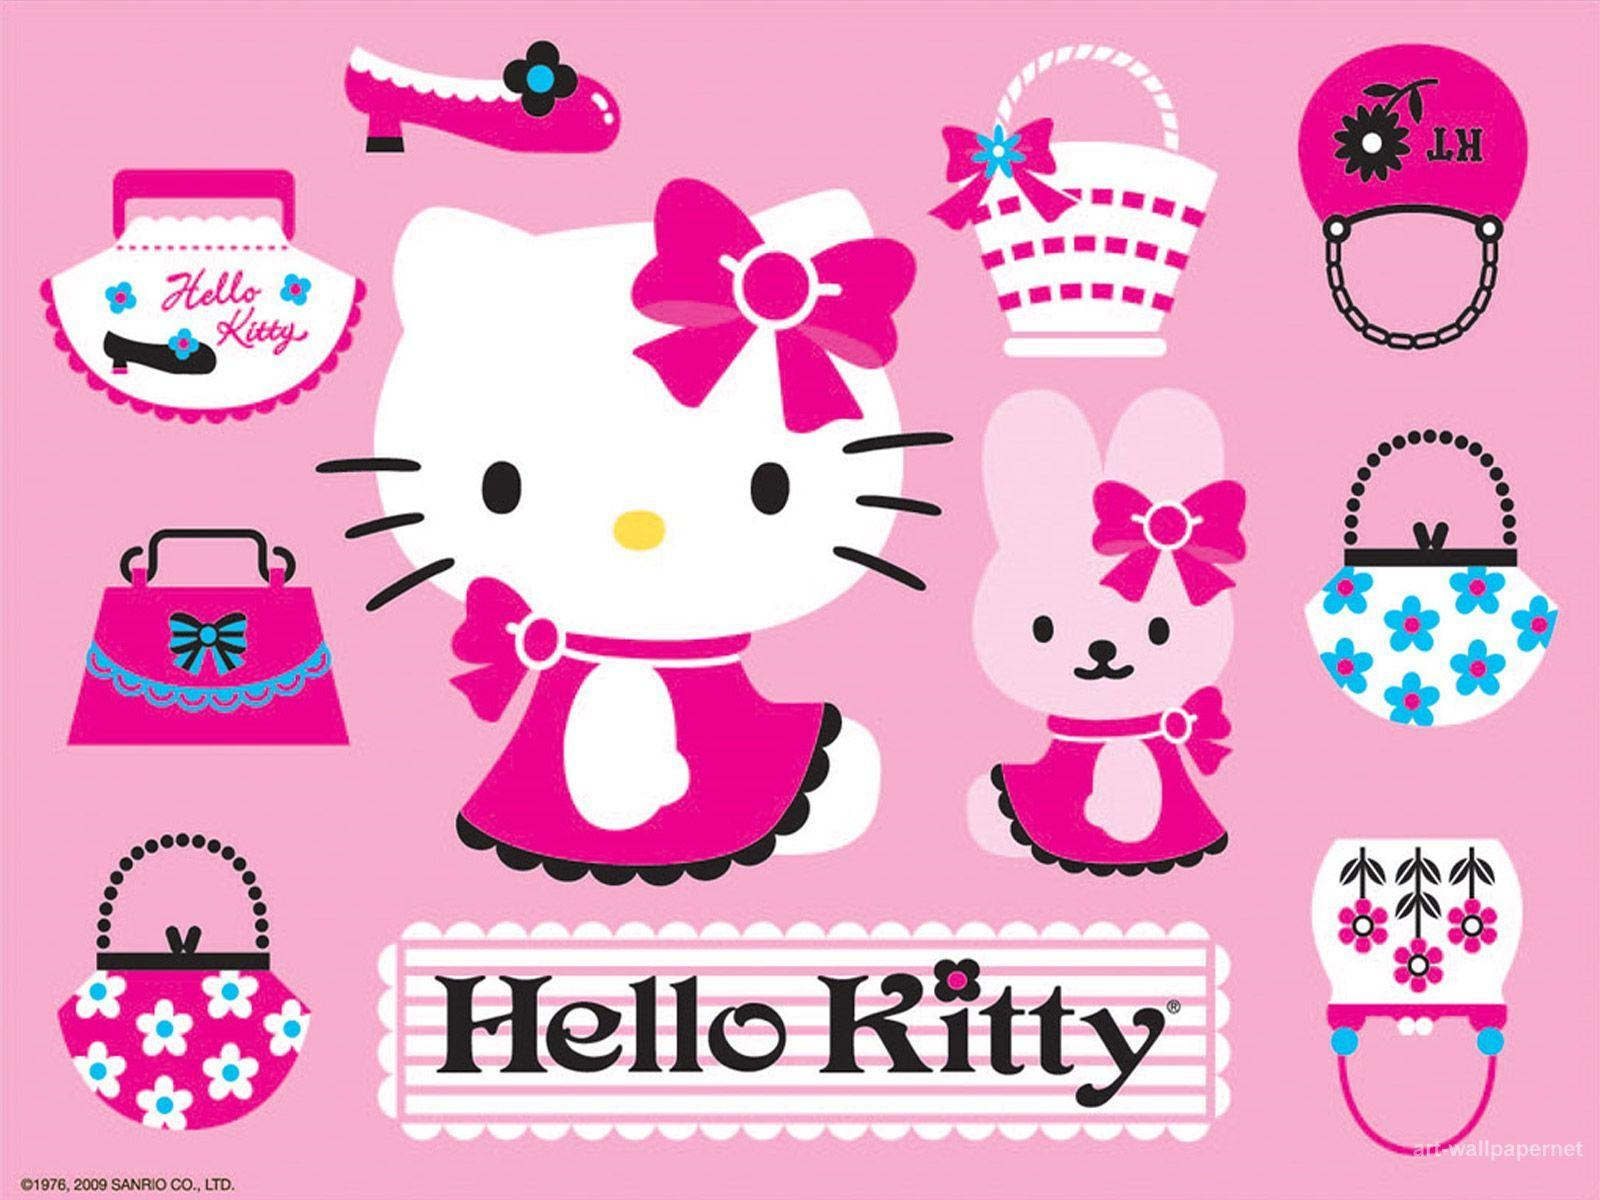 Hello kitty wallpapers and screensavers wallpaper cave - Hello kitty wandlampe ...